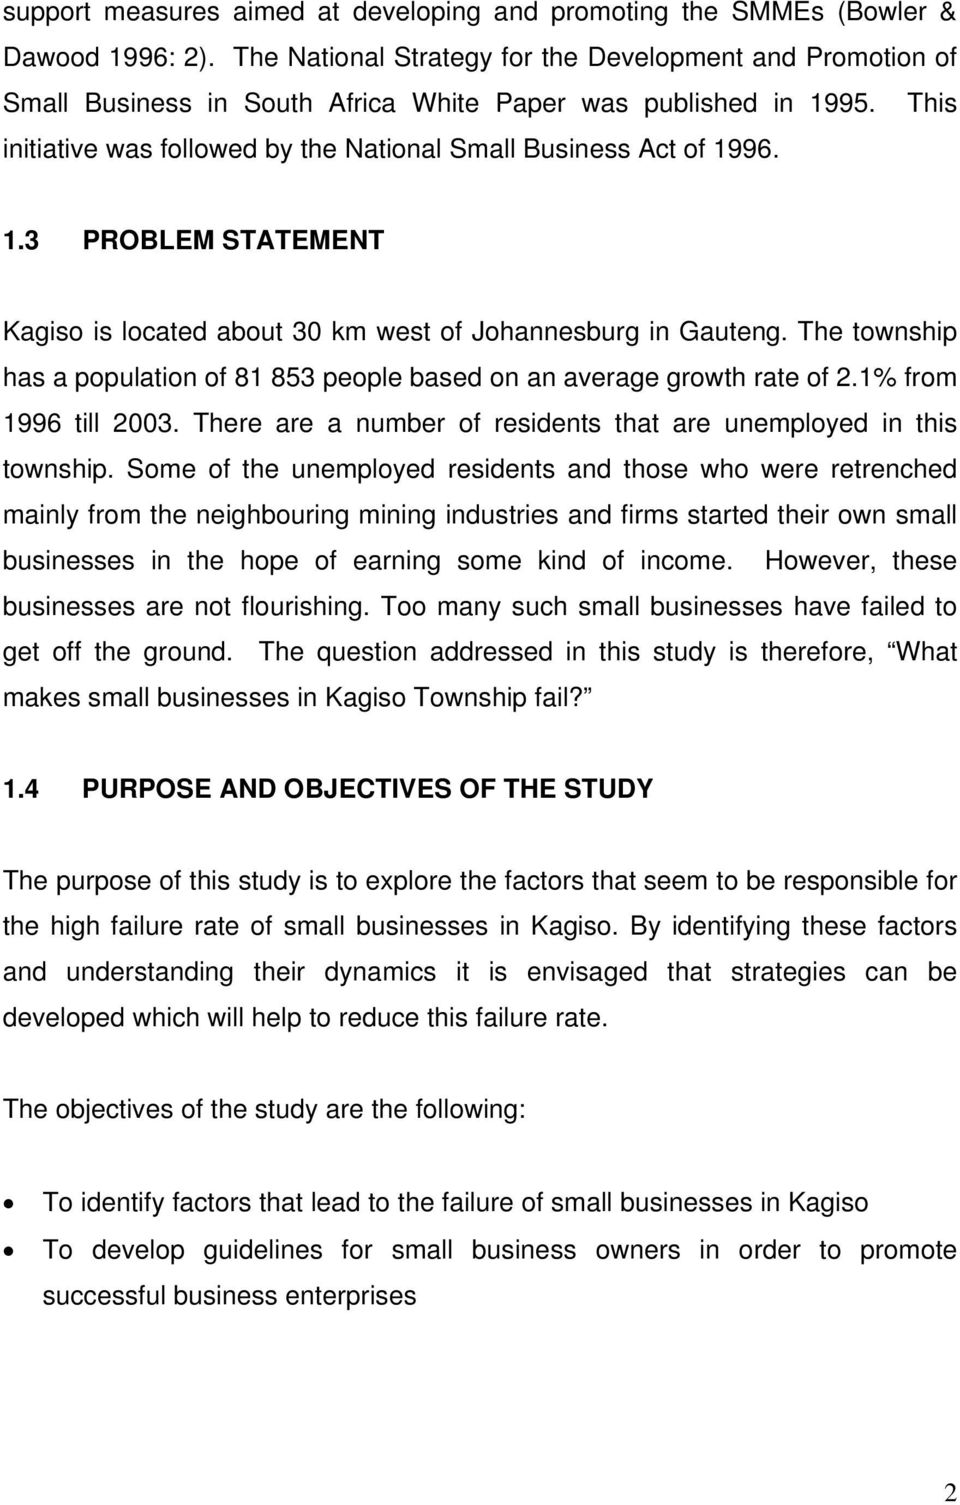 95. This initiative was followed by the National Small Business Act of 1996. 1.3 PROBLEM STATEMENT Kagiso is located about 30 km west of Johannesburg in Gauteng.